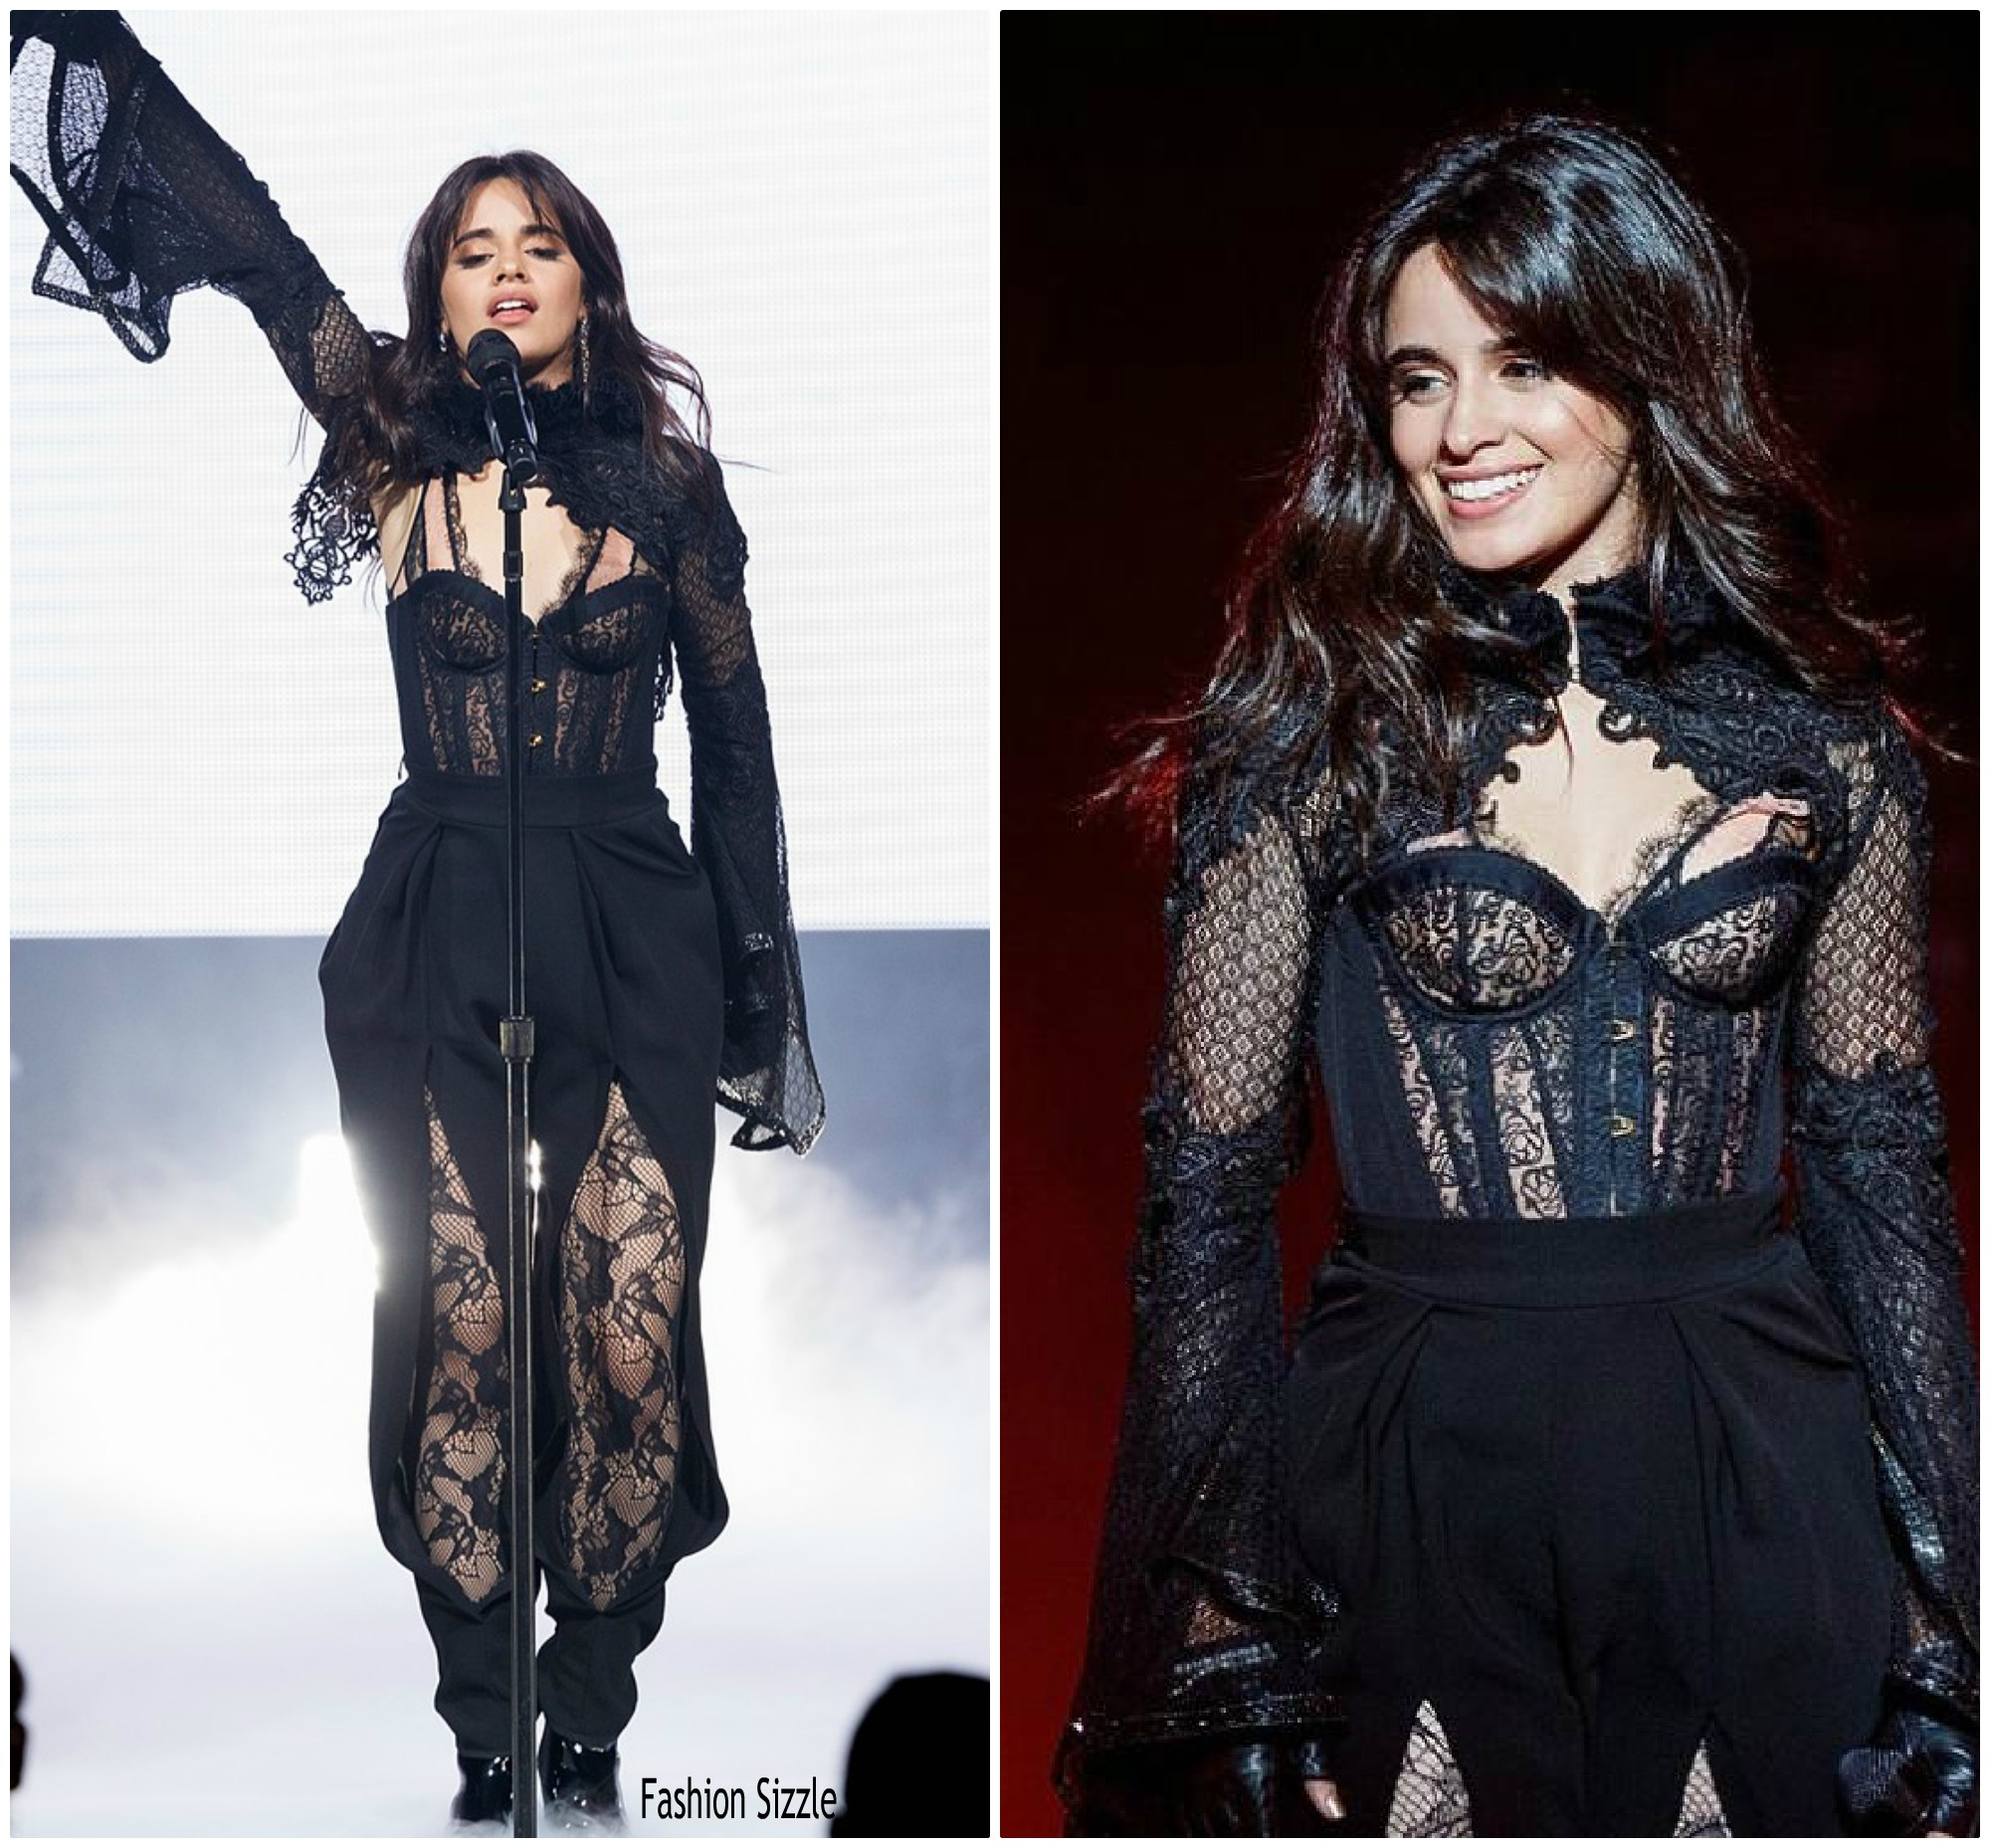 camila-cabello-in-agent-provocateur-never-be-the-same-tour